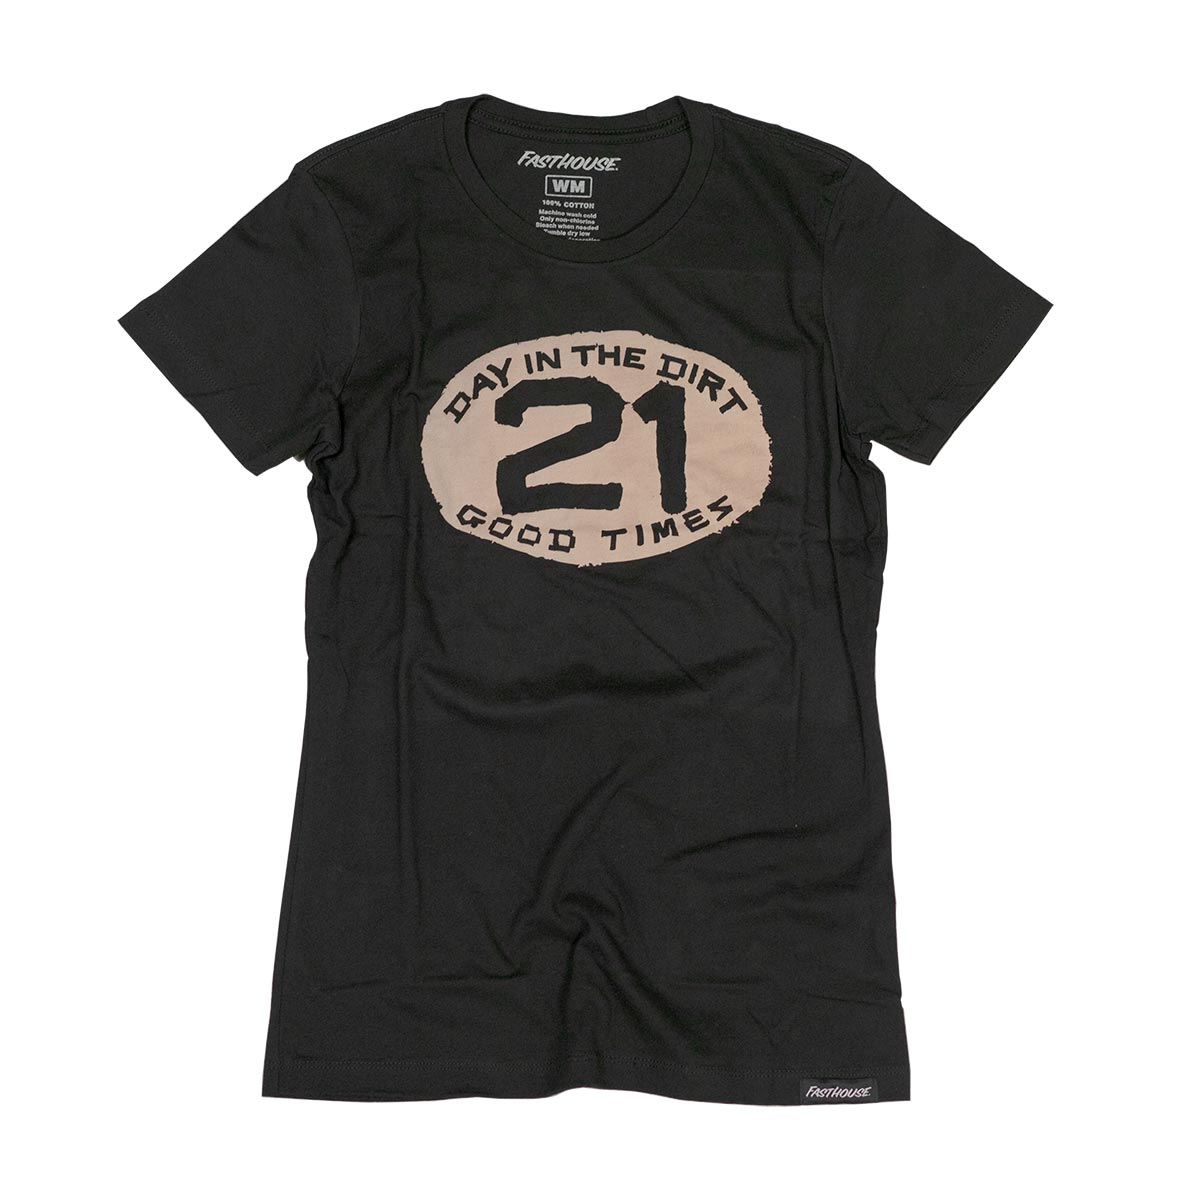 Fasthouse - Day in the Dirt Plate Womens Tee - Black